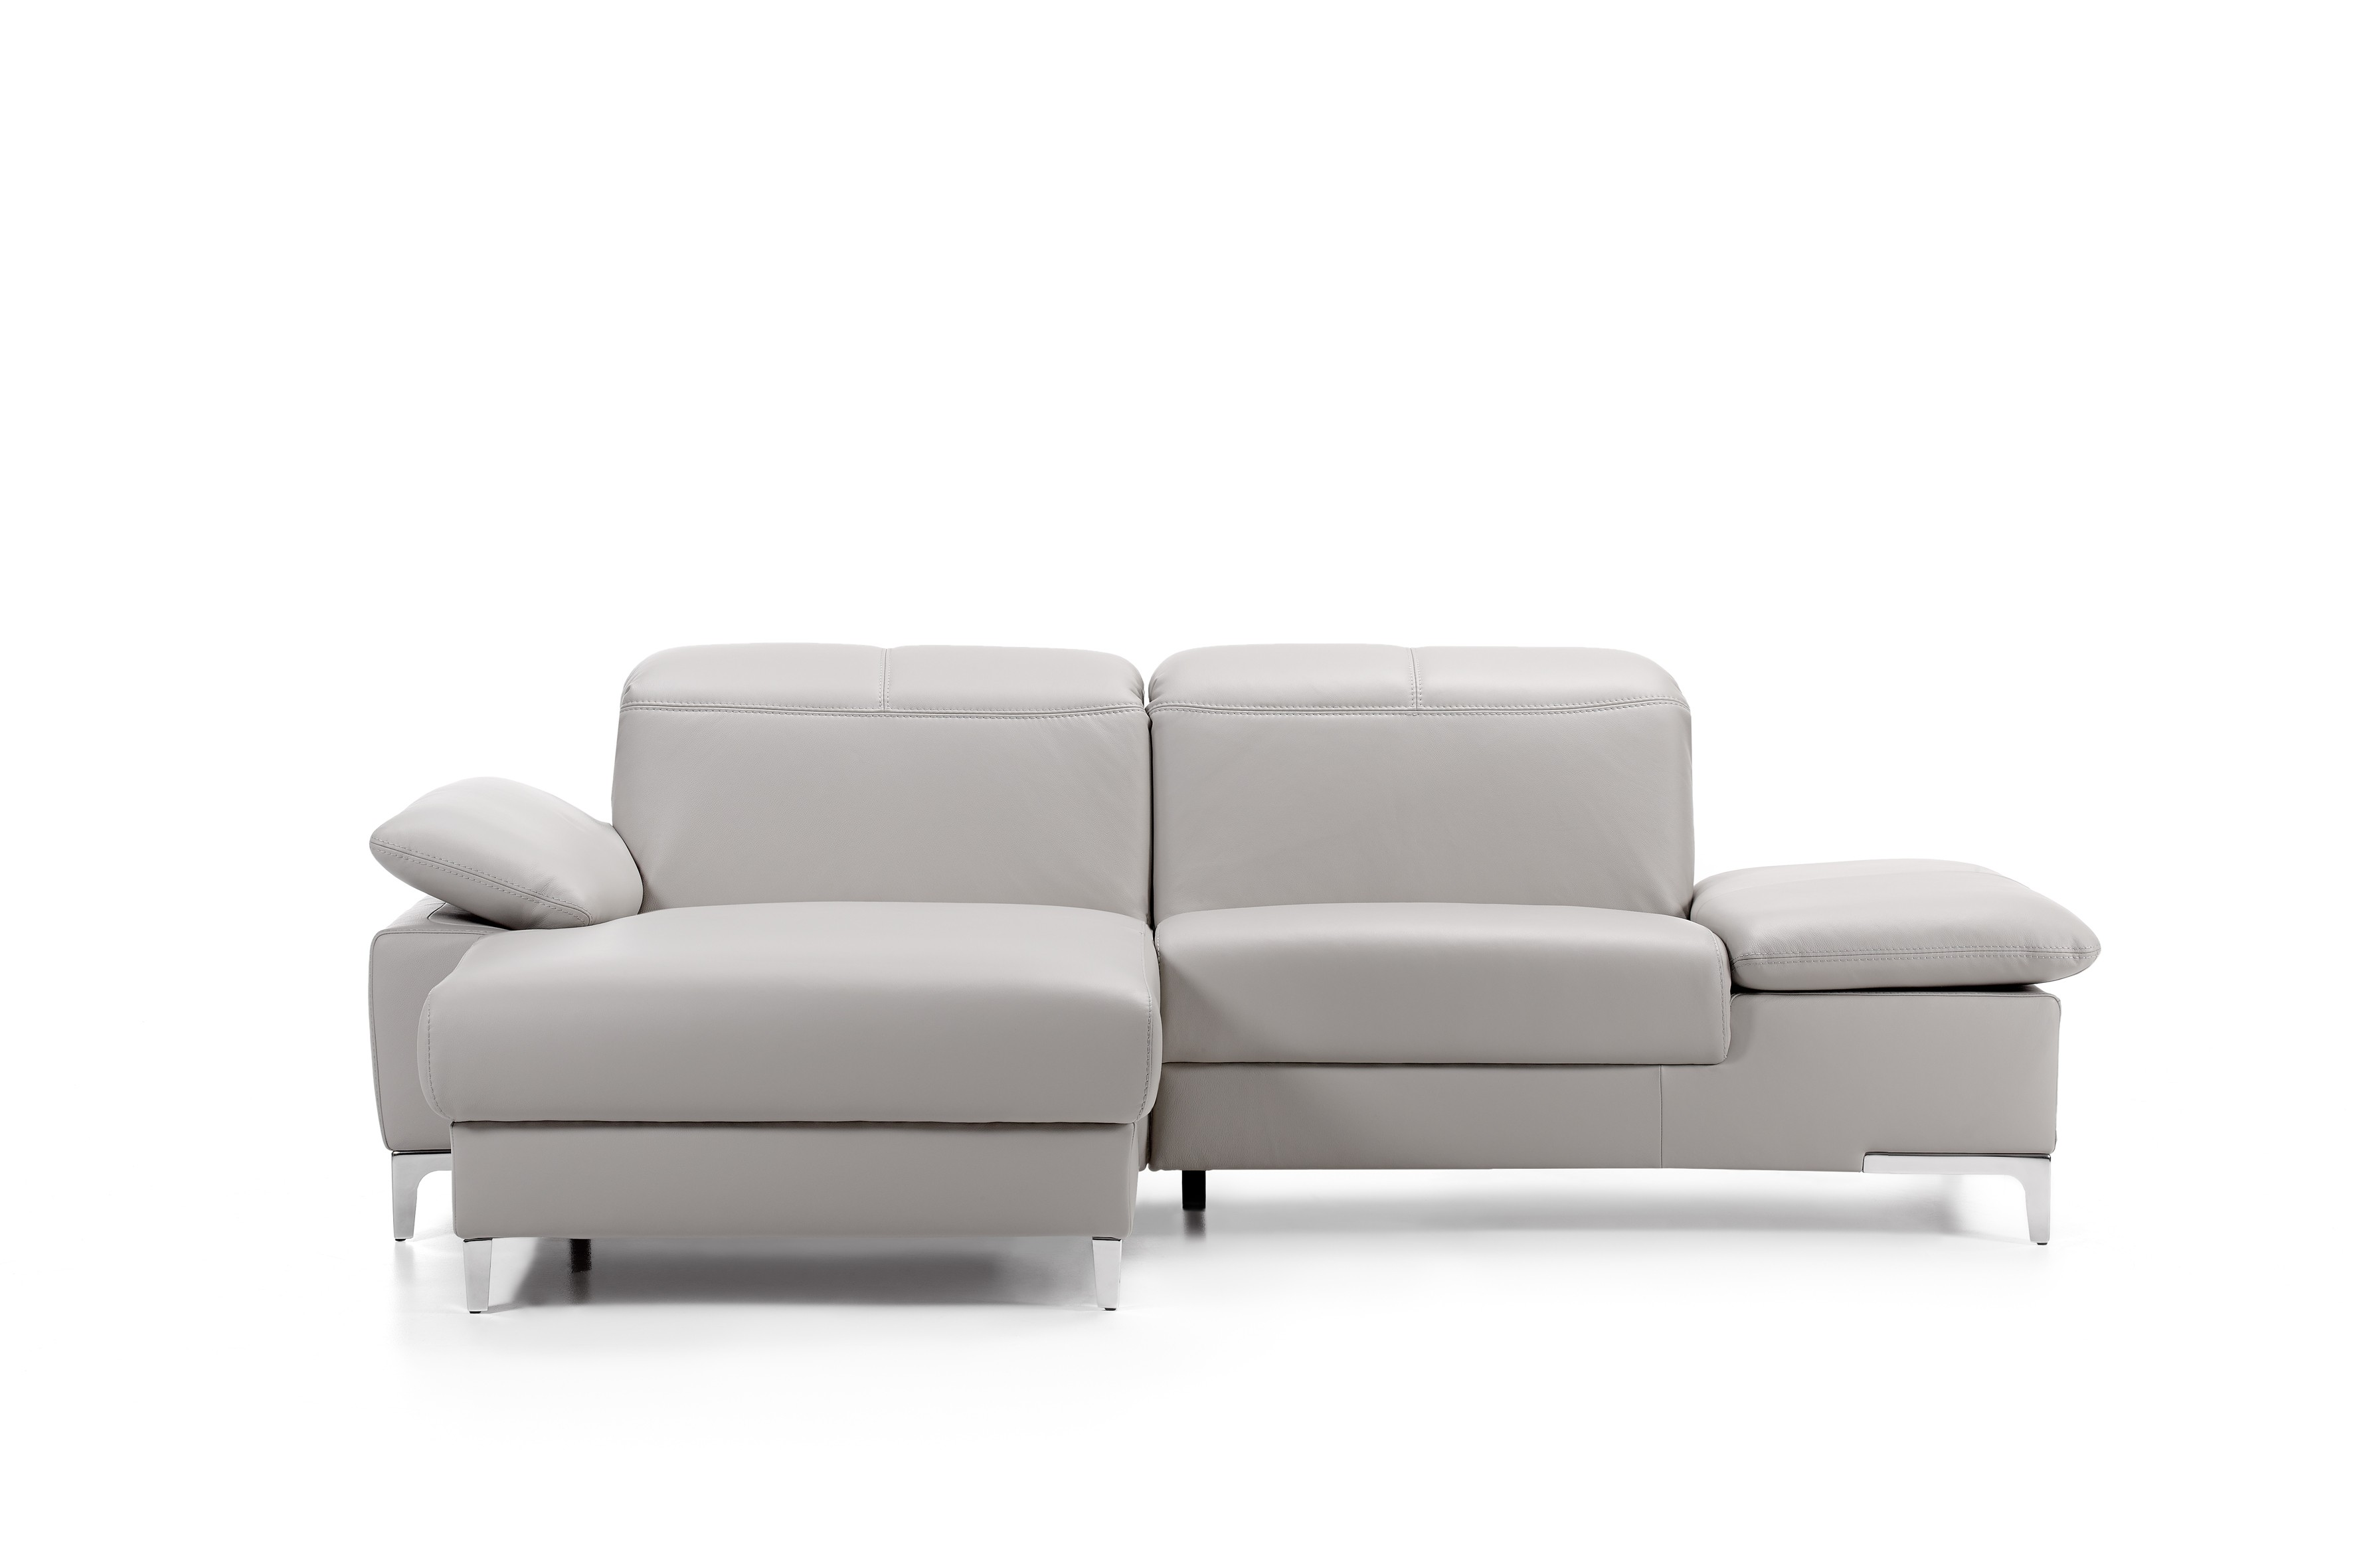 Chronos Leather Sectional By ROM Belgium At Nova Interiors